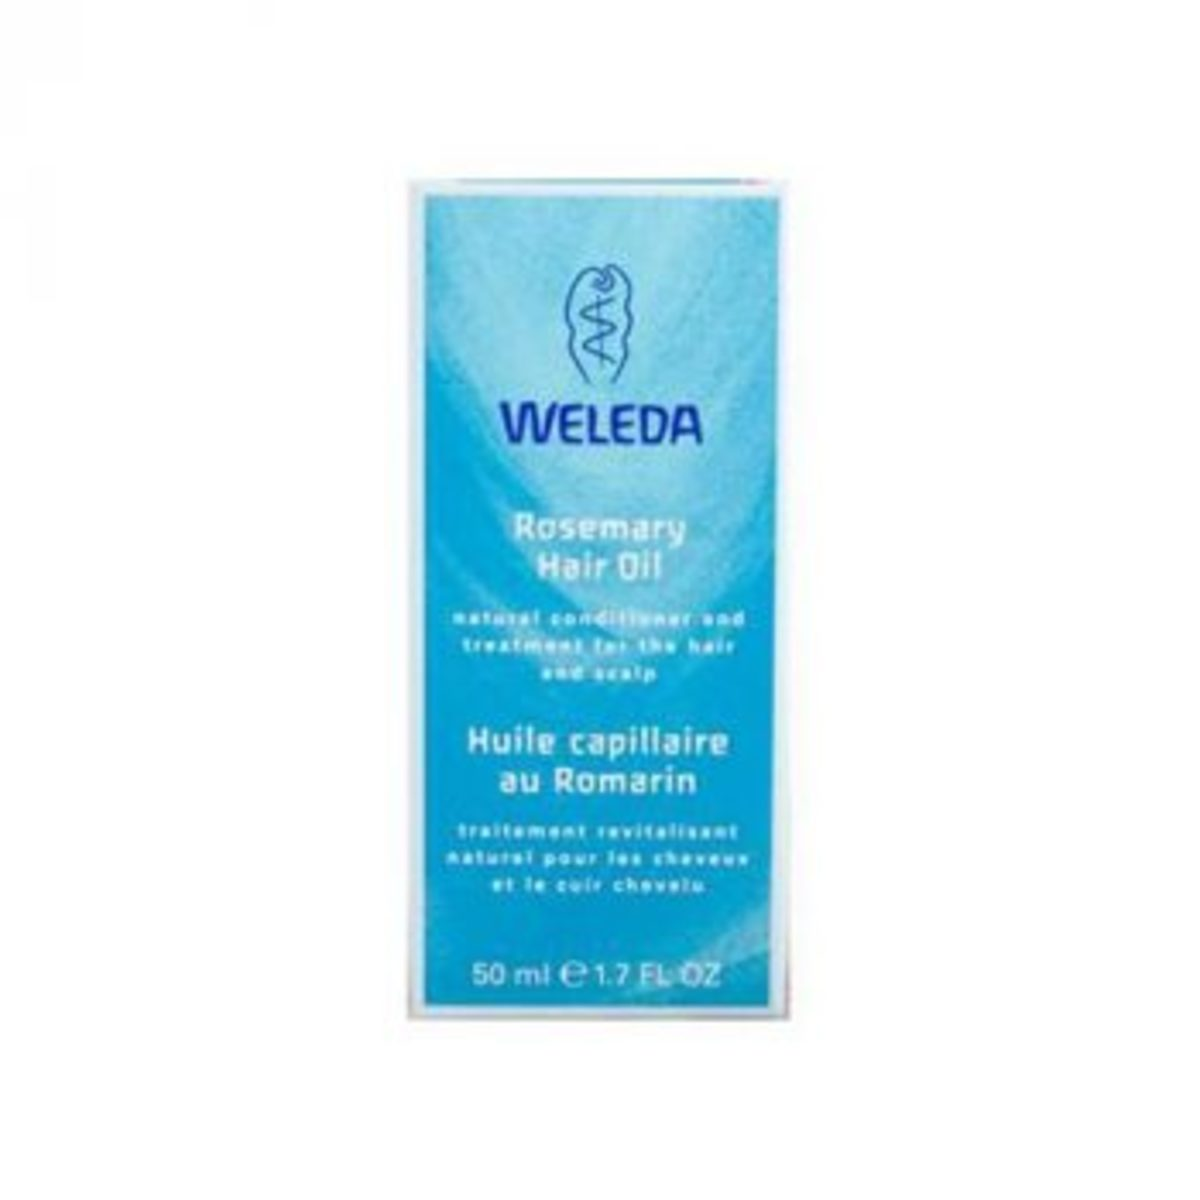 9-weleda-rosemary-hair-oil-350x350